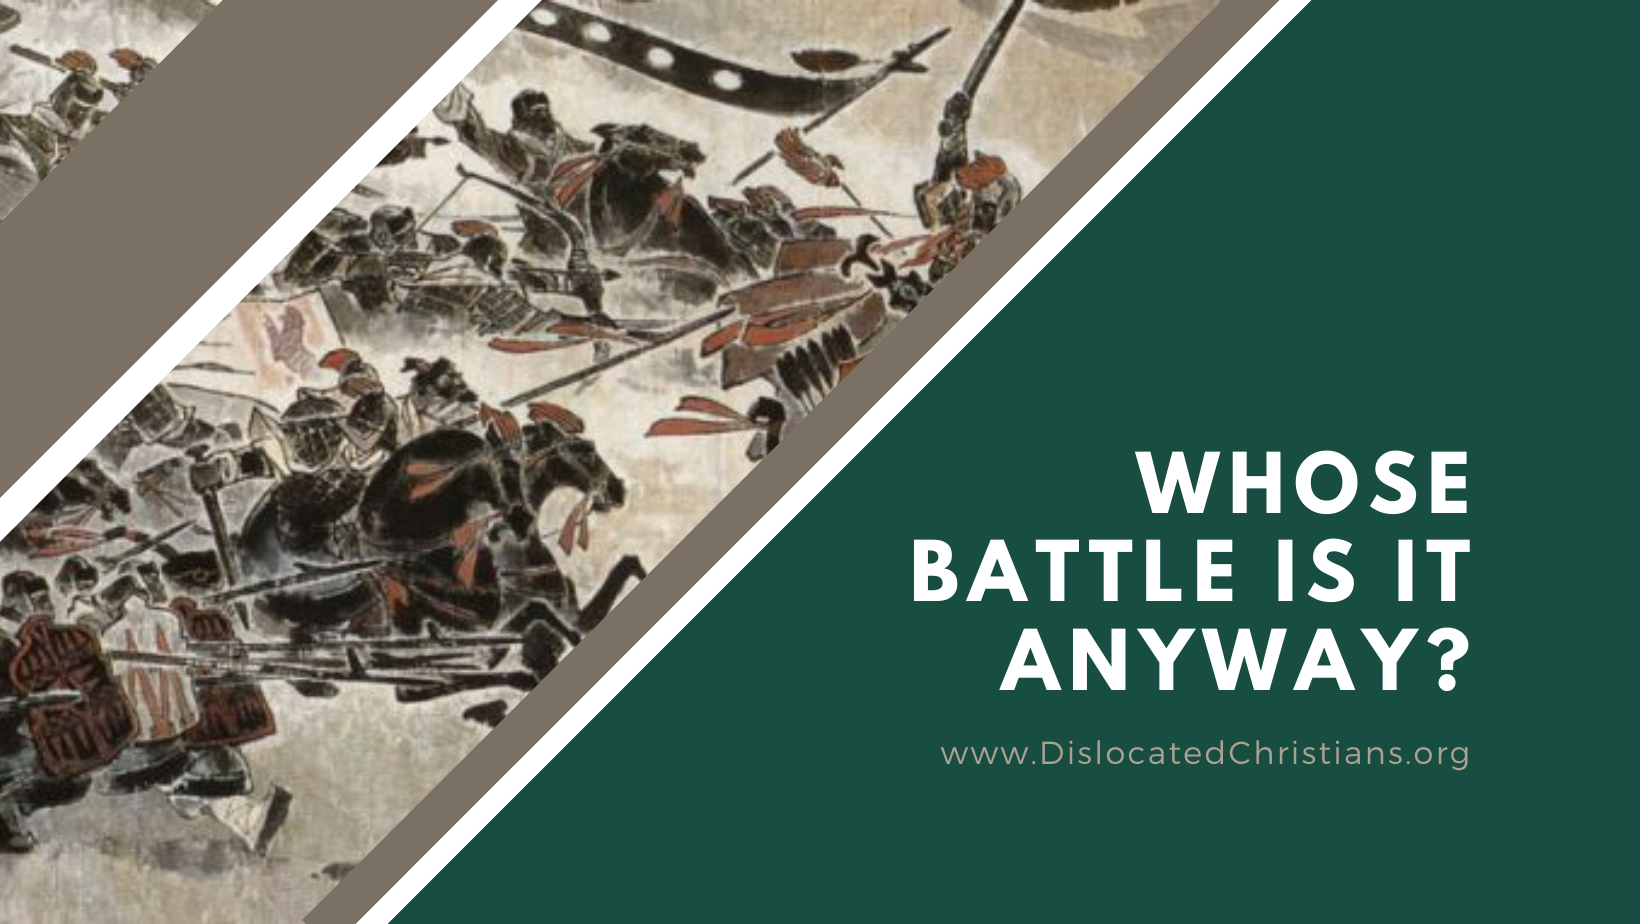 Ancient battle and question 'Whose battle is it anyway?'